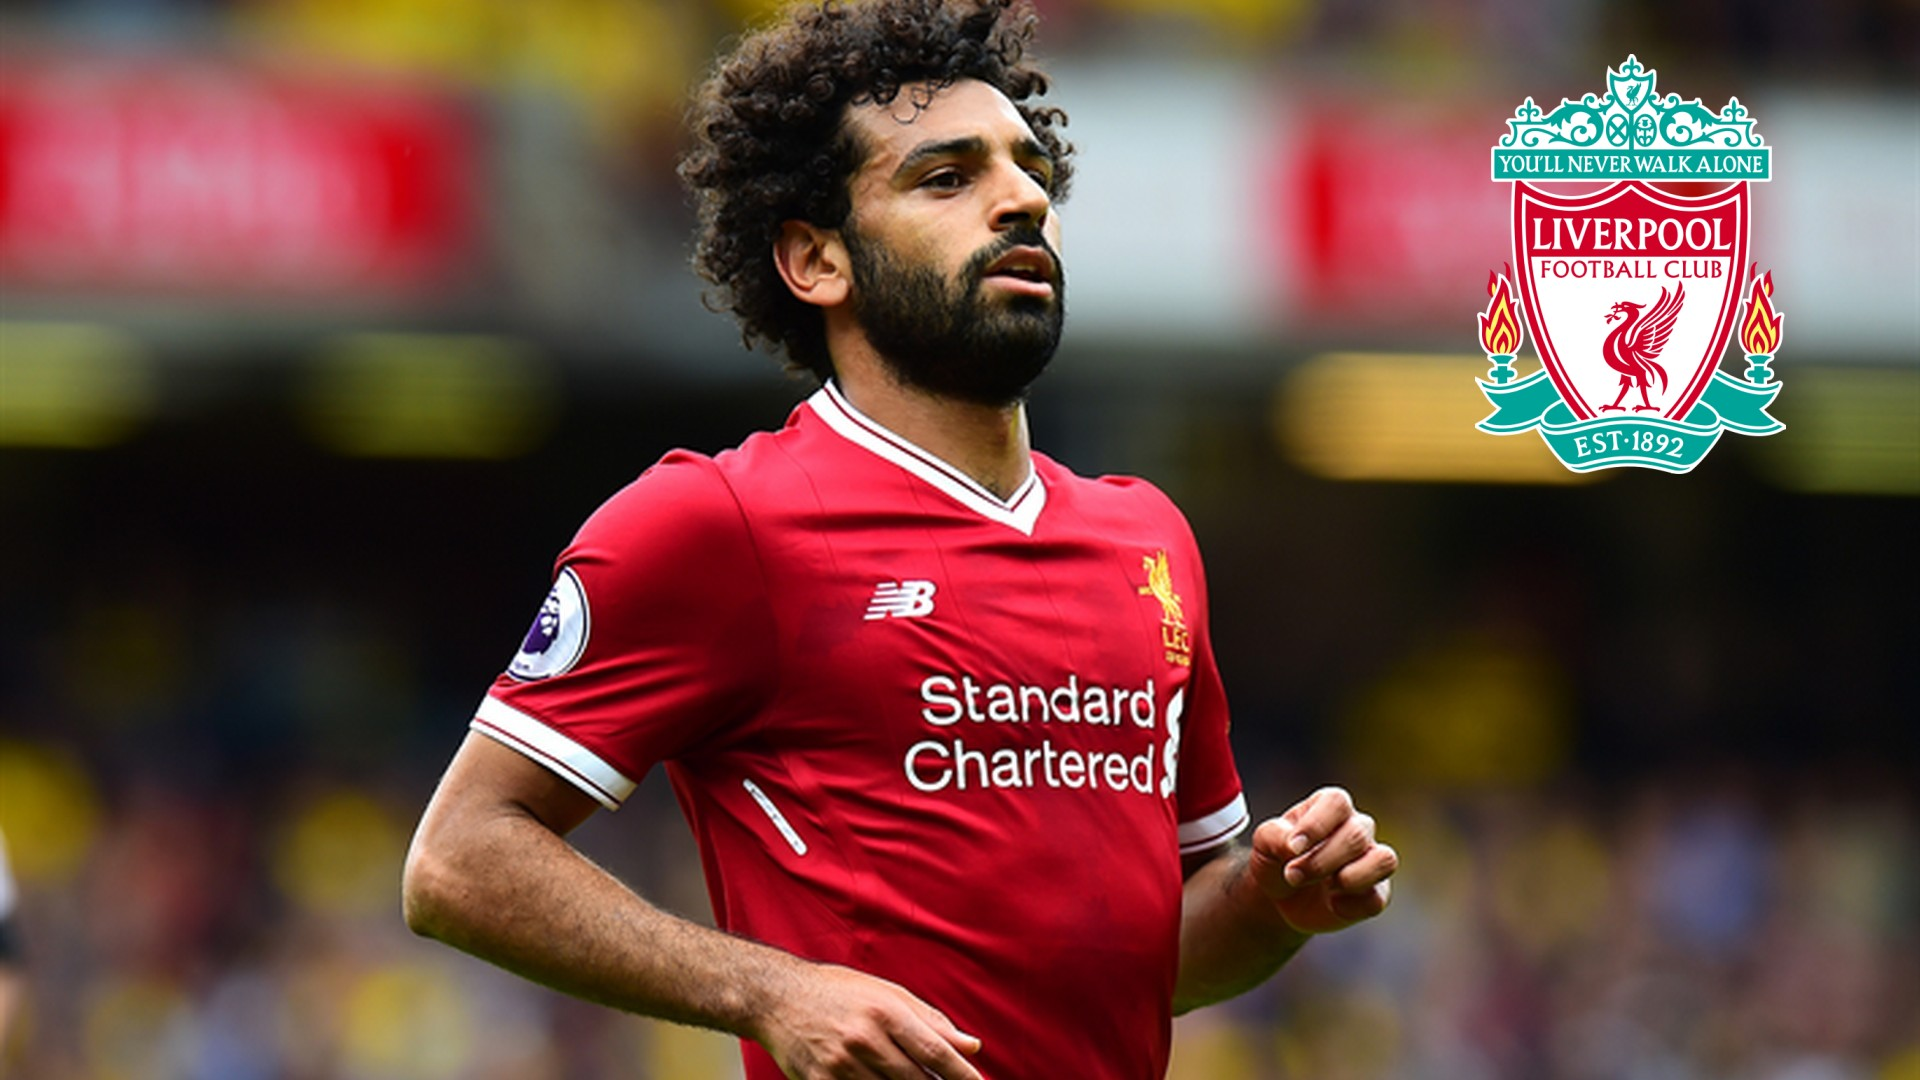 Wallpaper Hd Liverpool Mohamed Salah With Image Resolution